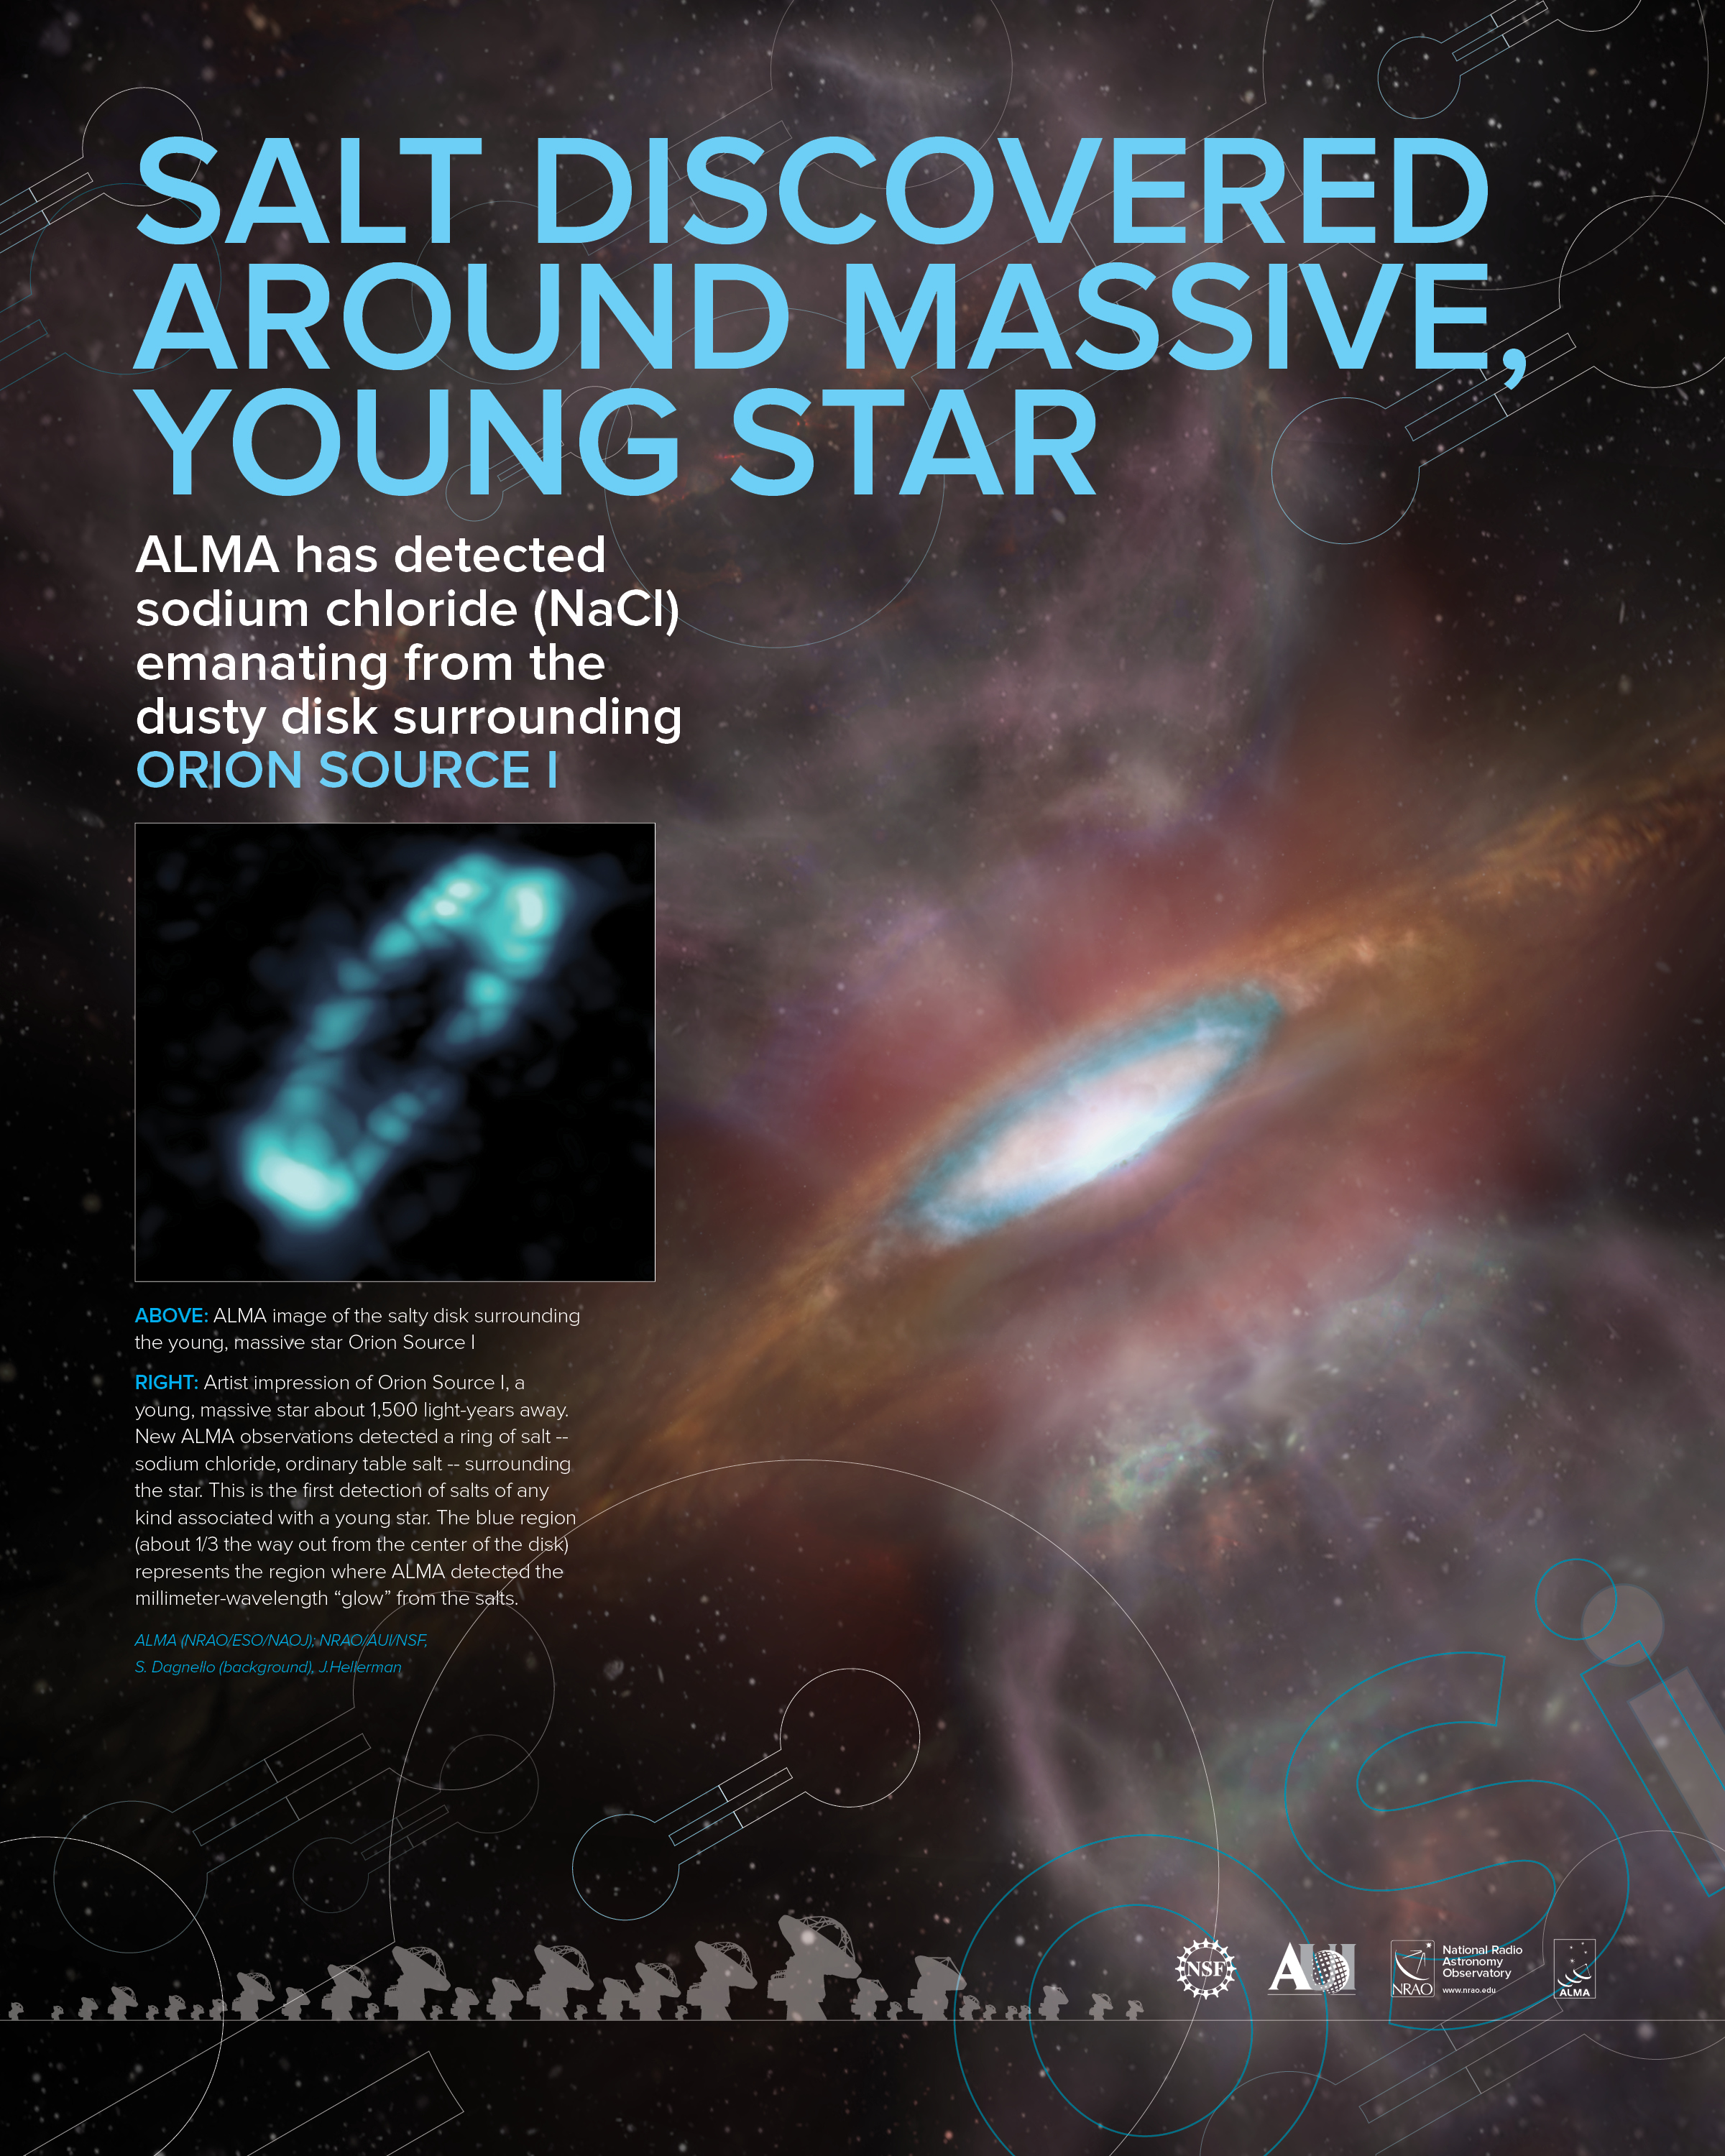 Salt Discovered Around Massive Young Star poster - National